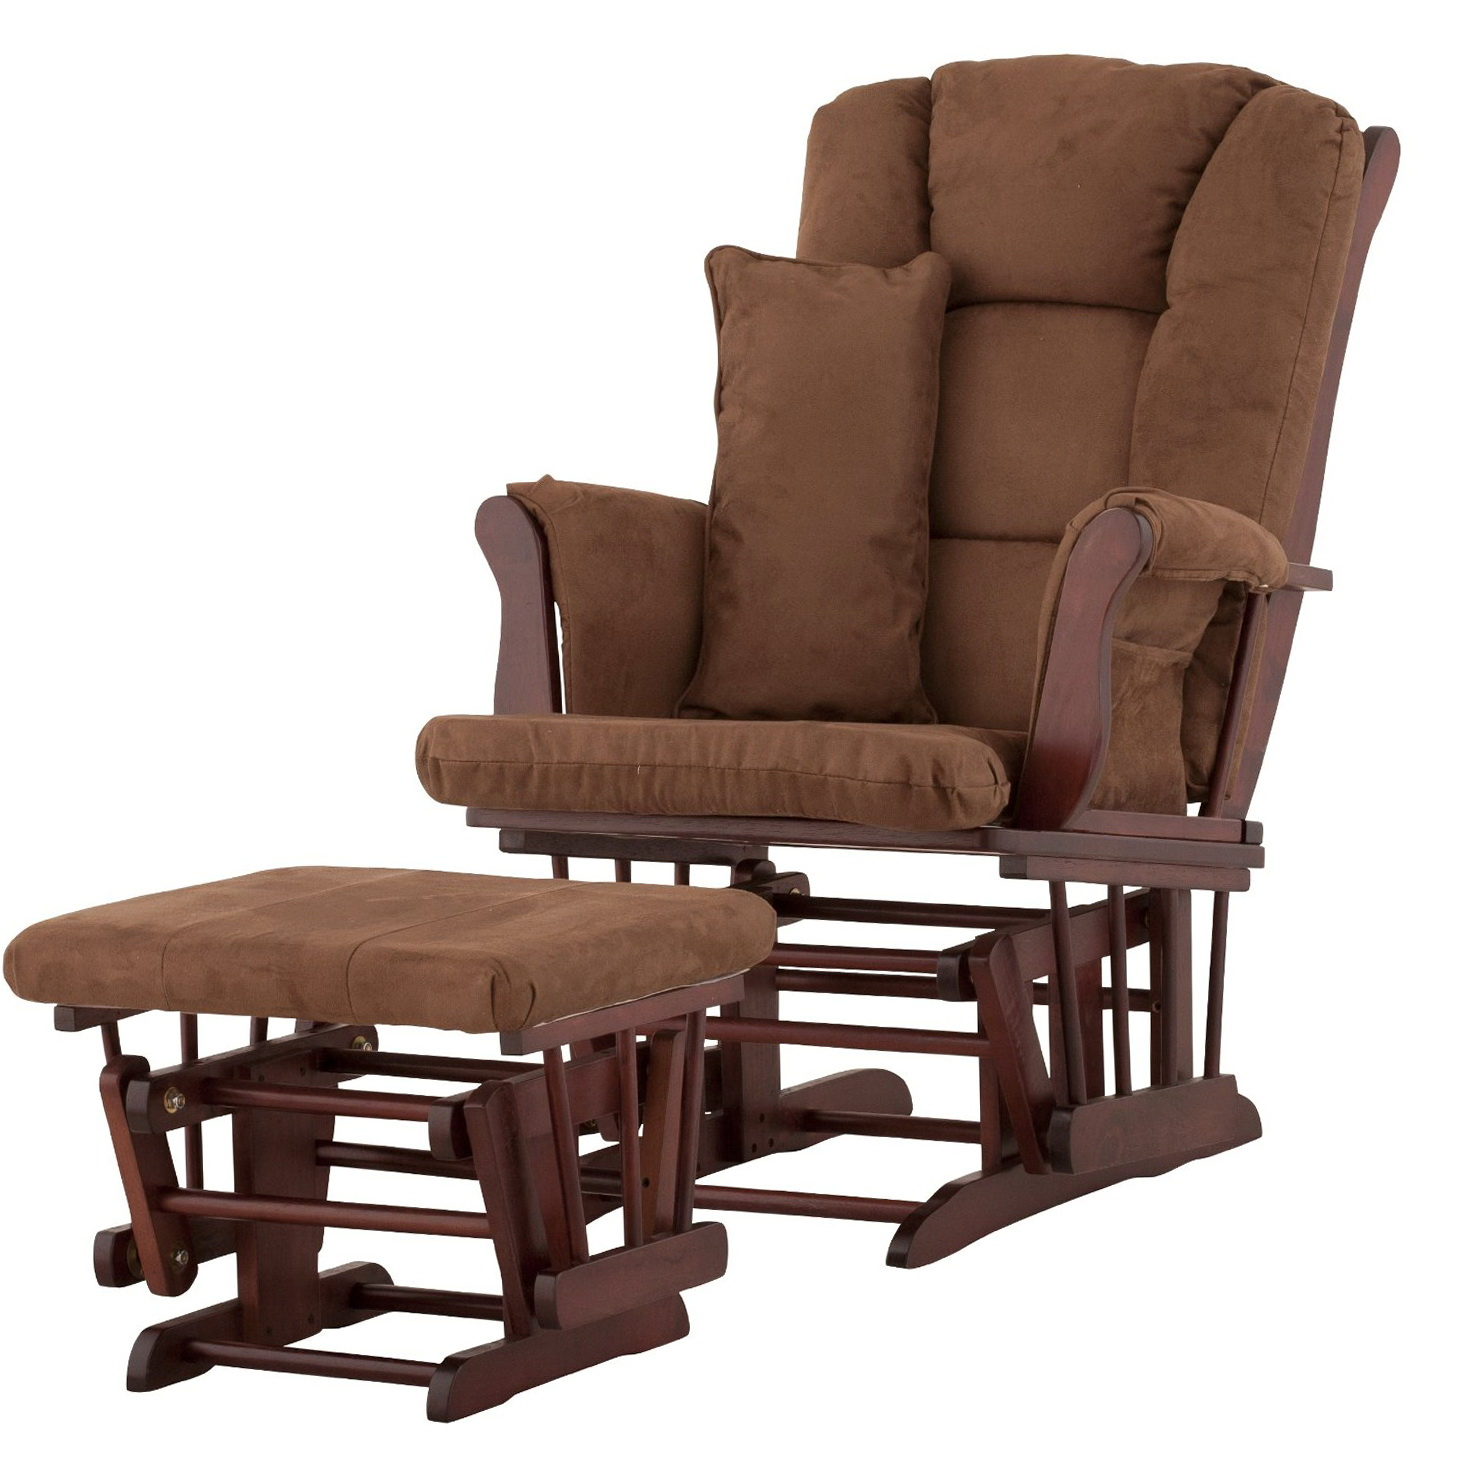 Glider Rocker Cushions Set